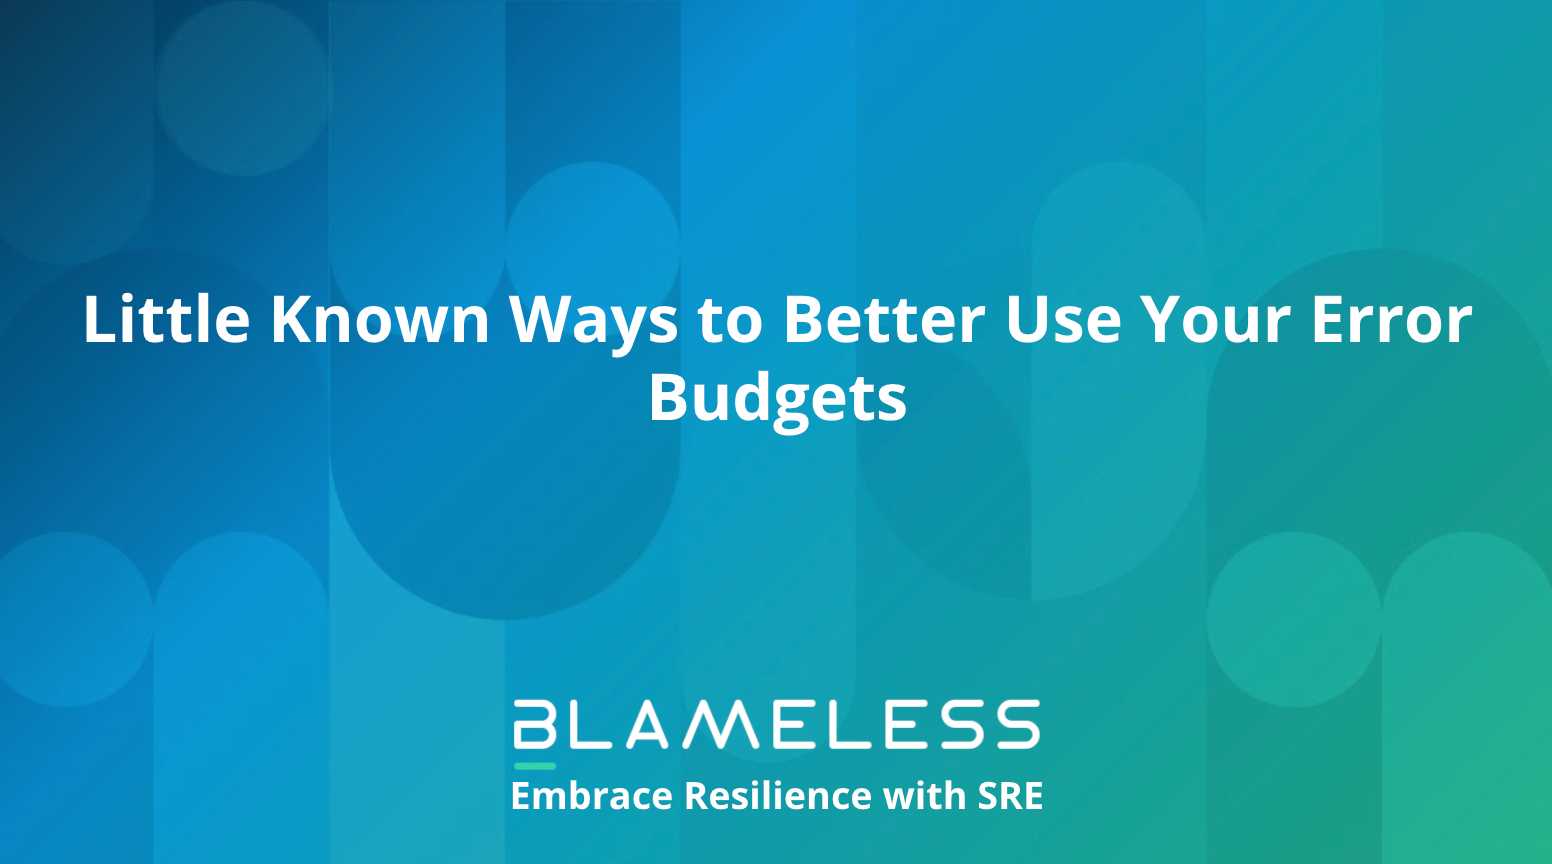 Little Known Ways to Better Use Your Error Budgets